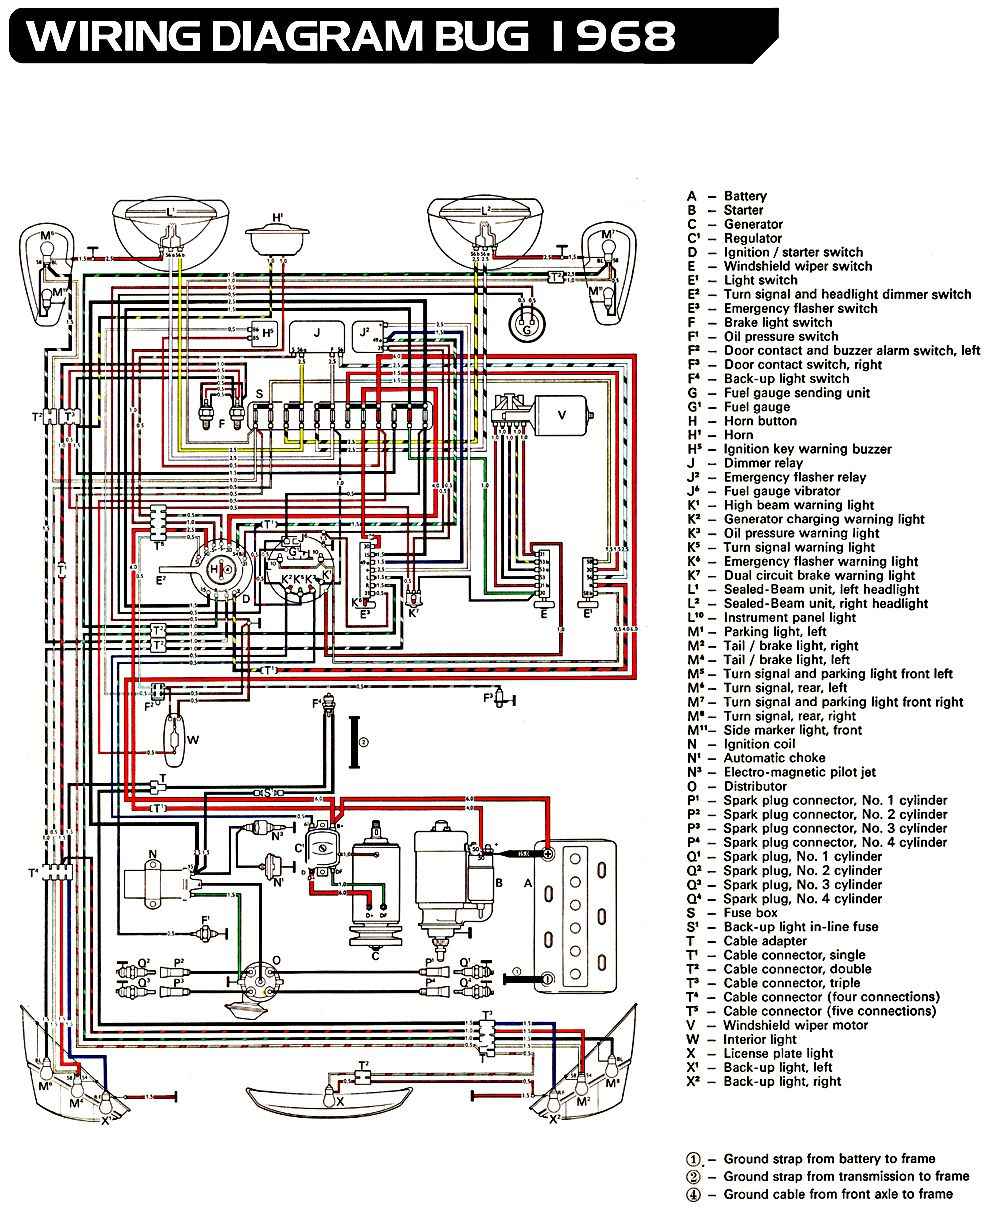 3a1908112d3826270ed5e3be362292bf vw bug ignition wiring diagram 73 vw wiring diagram free vw type 3 wiring harness at fashall.co